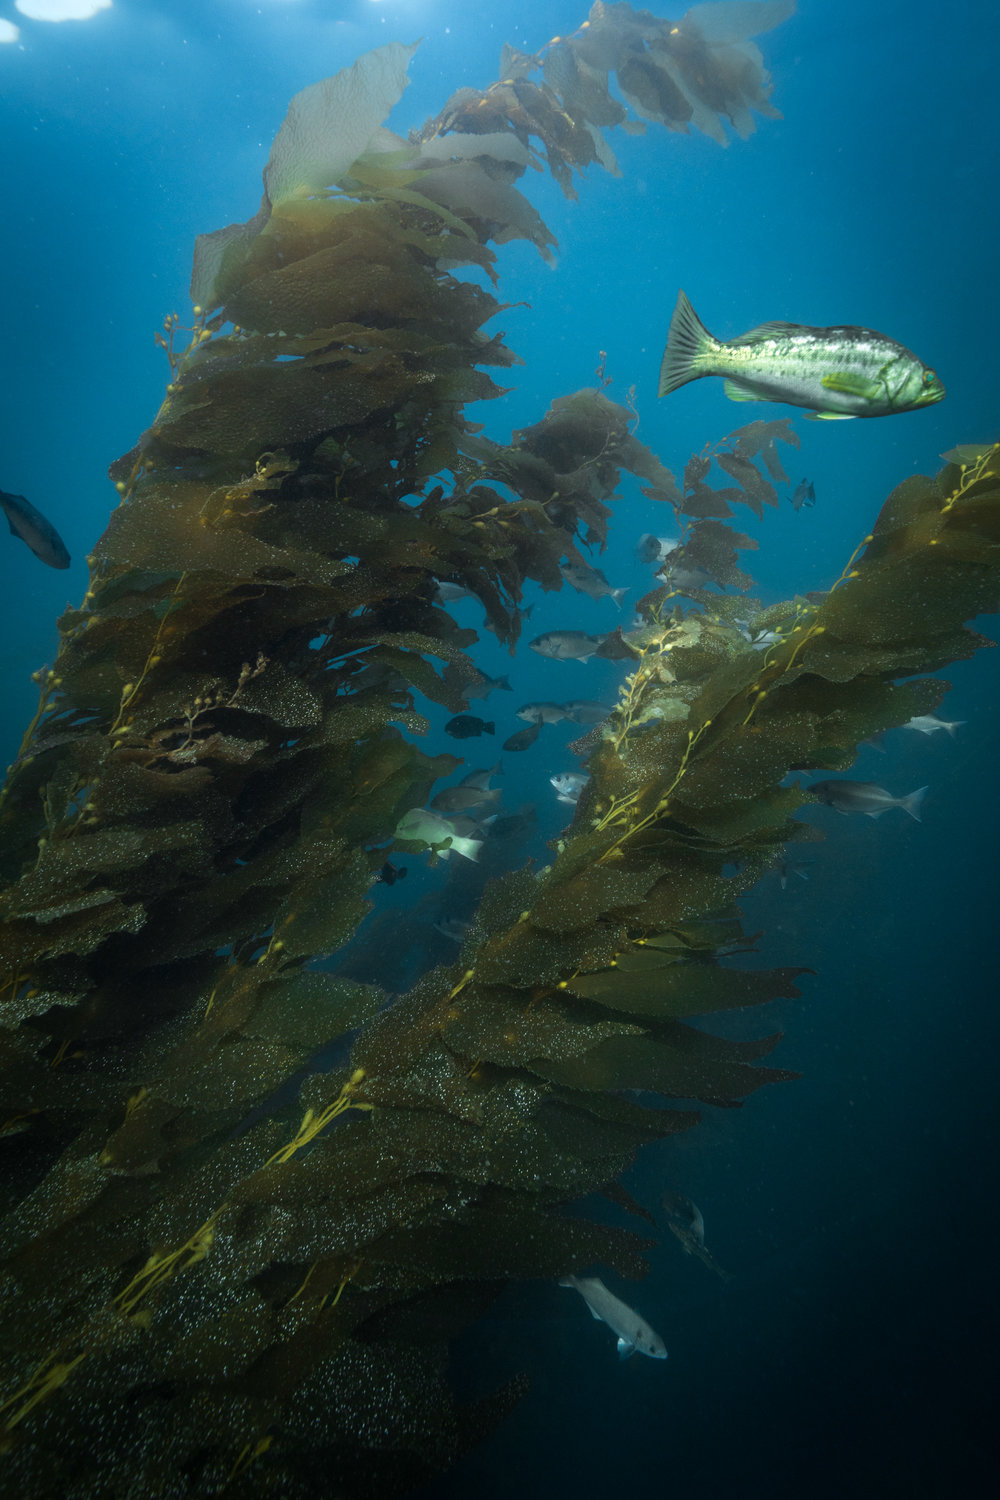 We would later return to California to film the underwater perspective of the kelp forest.